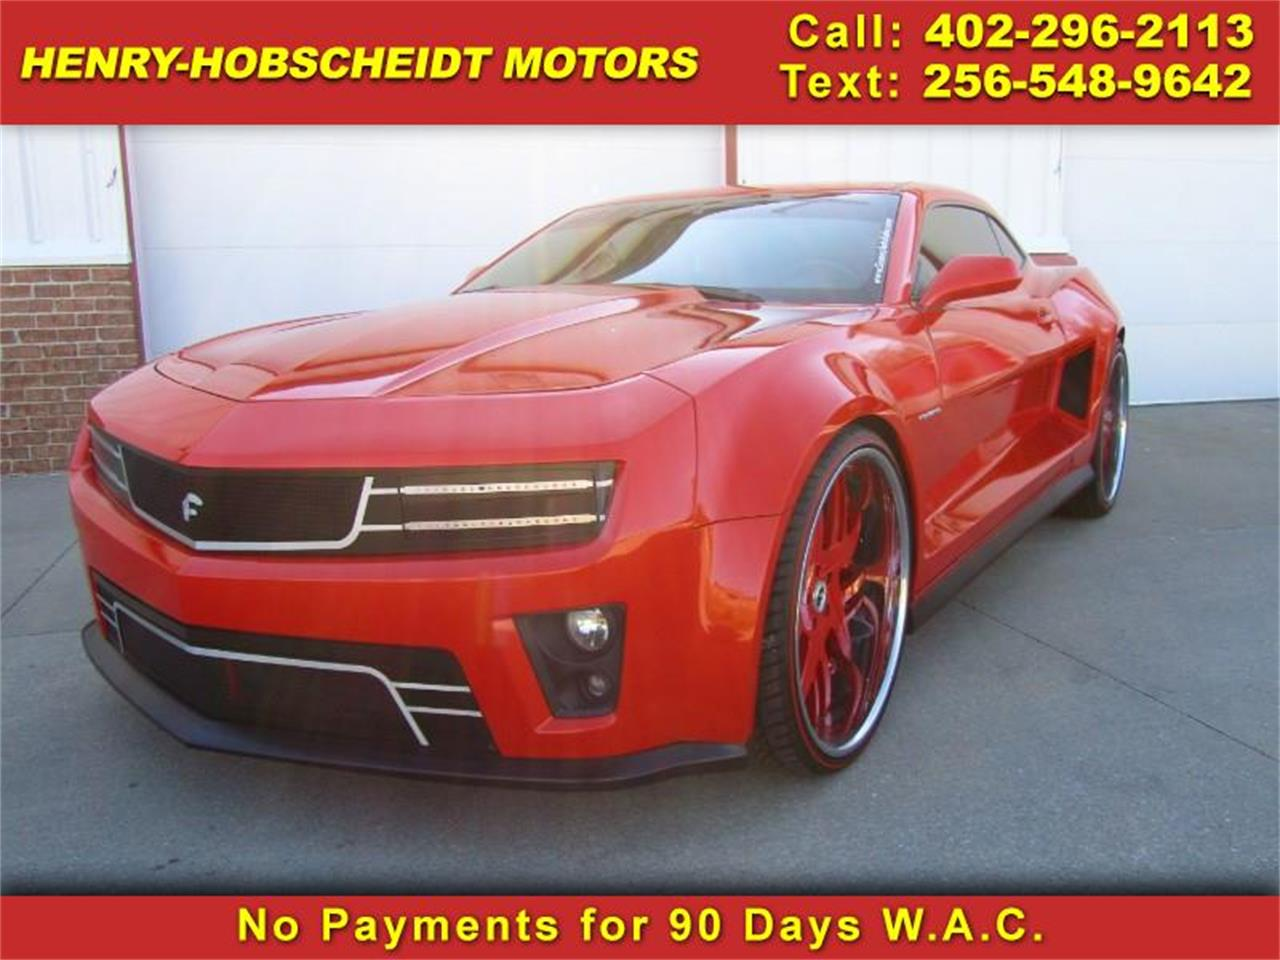 2010 Chevrolet Camaro Ss For Sale Classiccars Com Cc